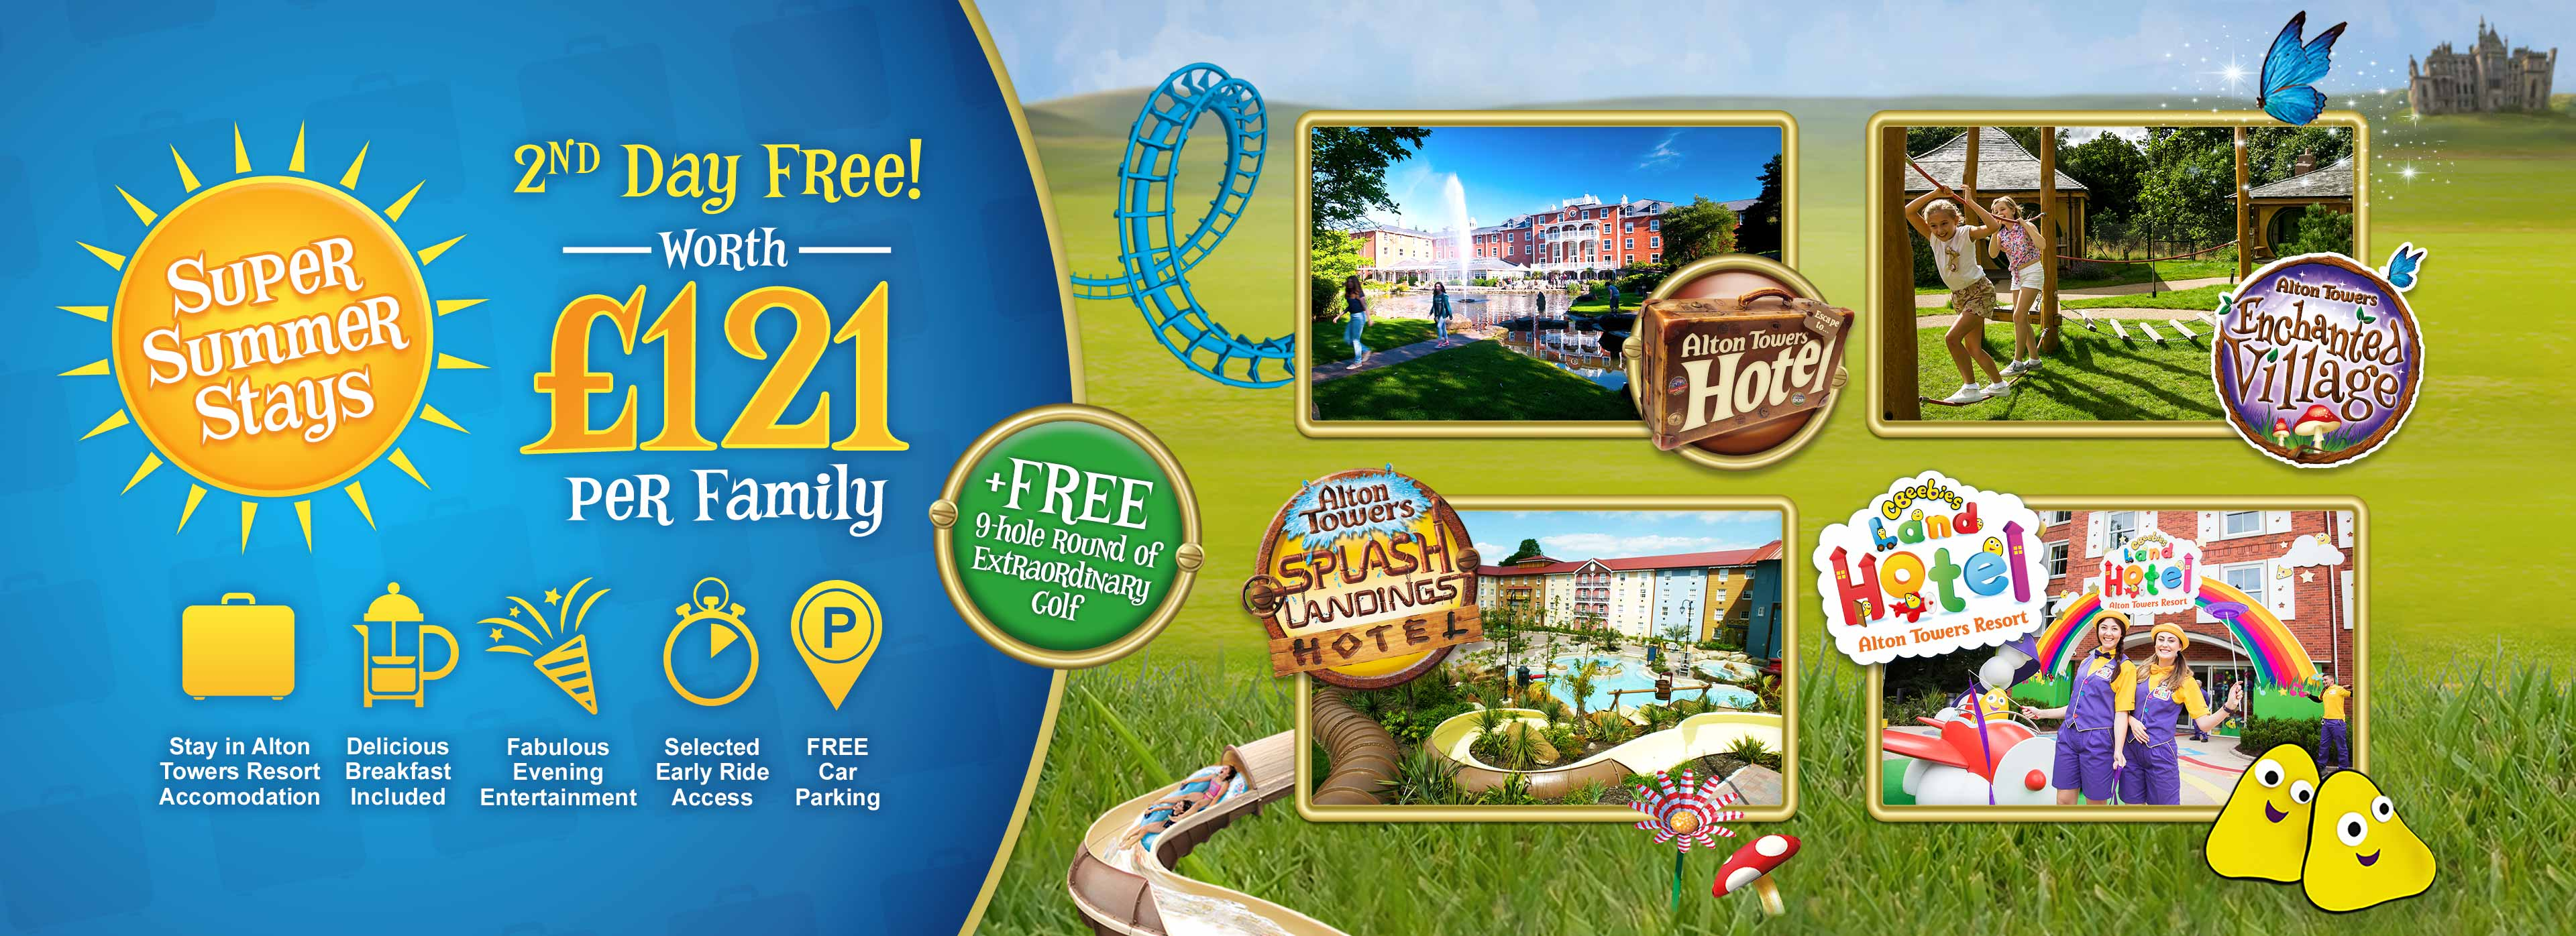 Super Summer Short Breaks at Alton Towers Resort